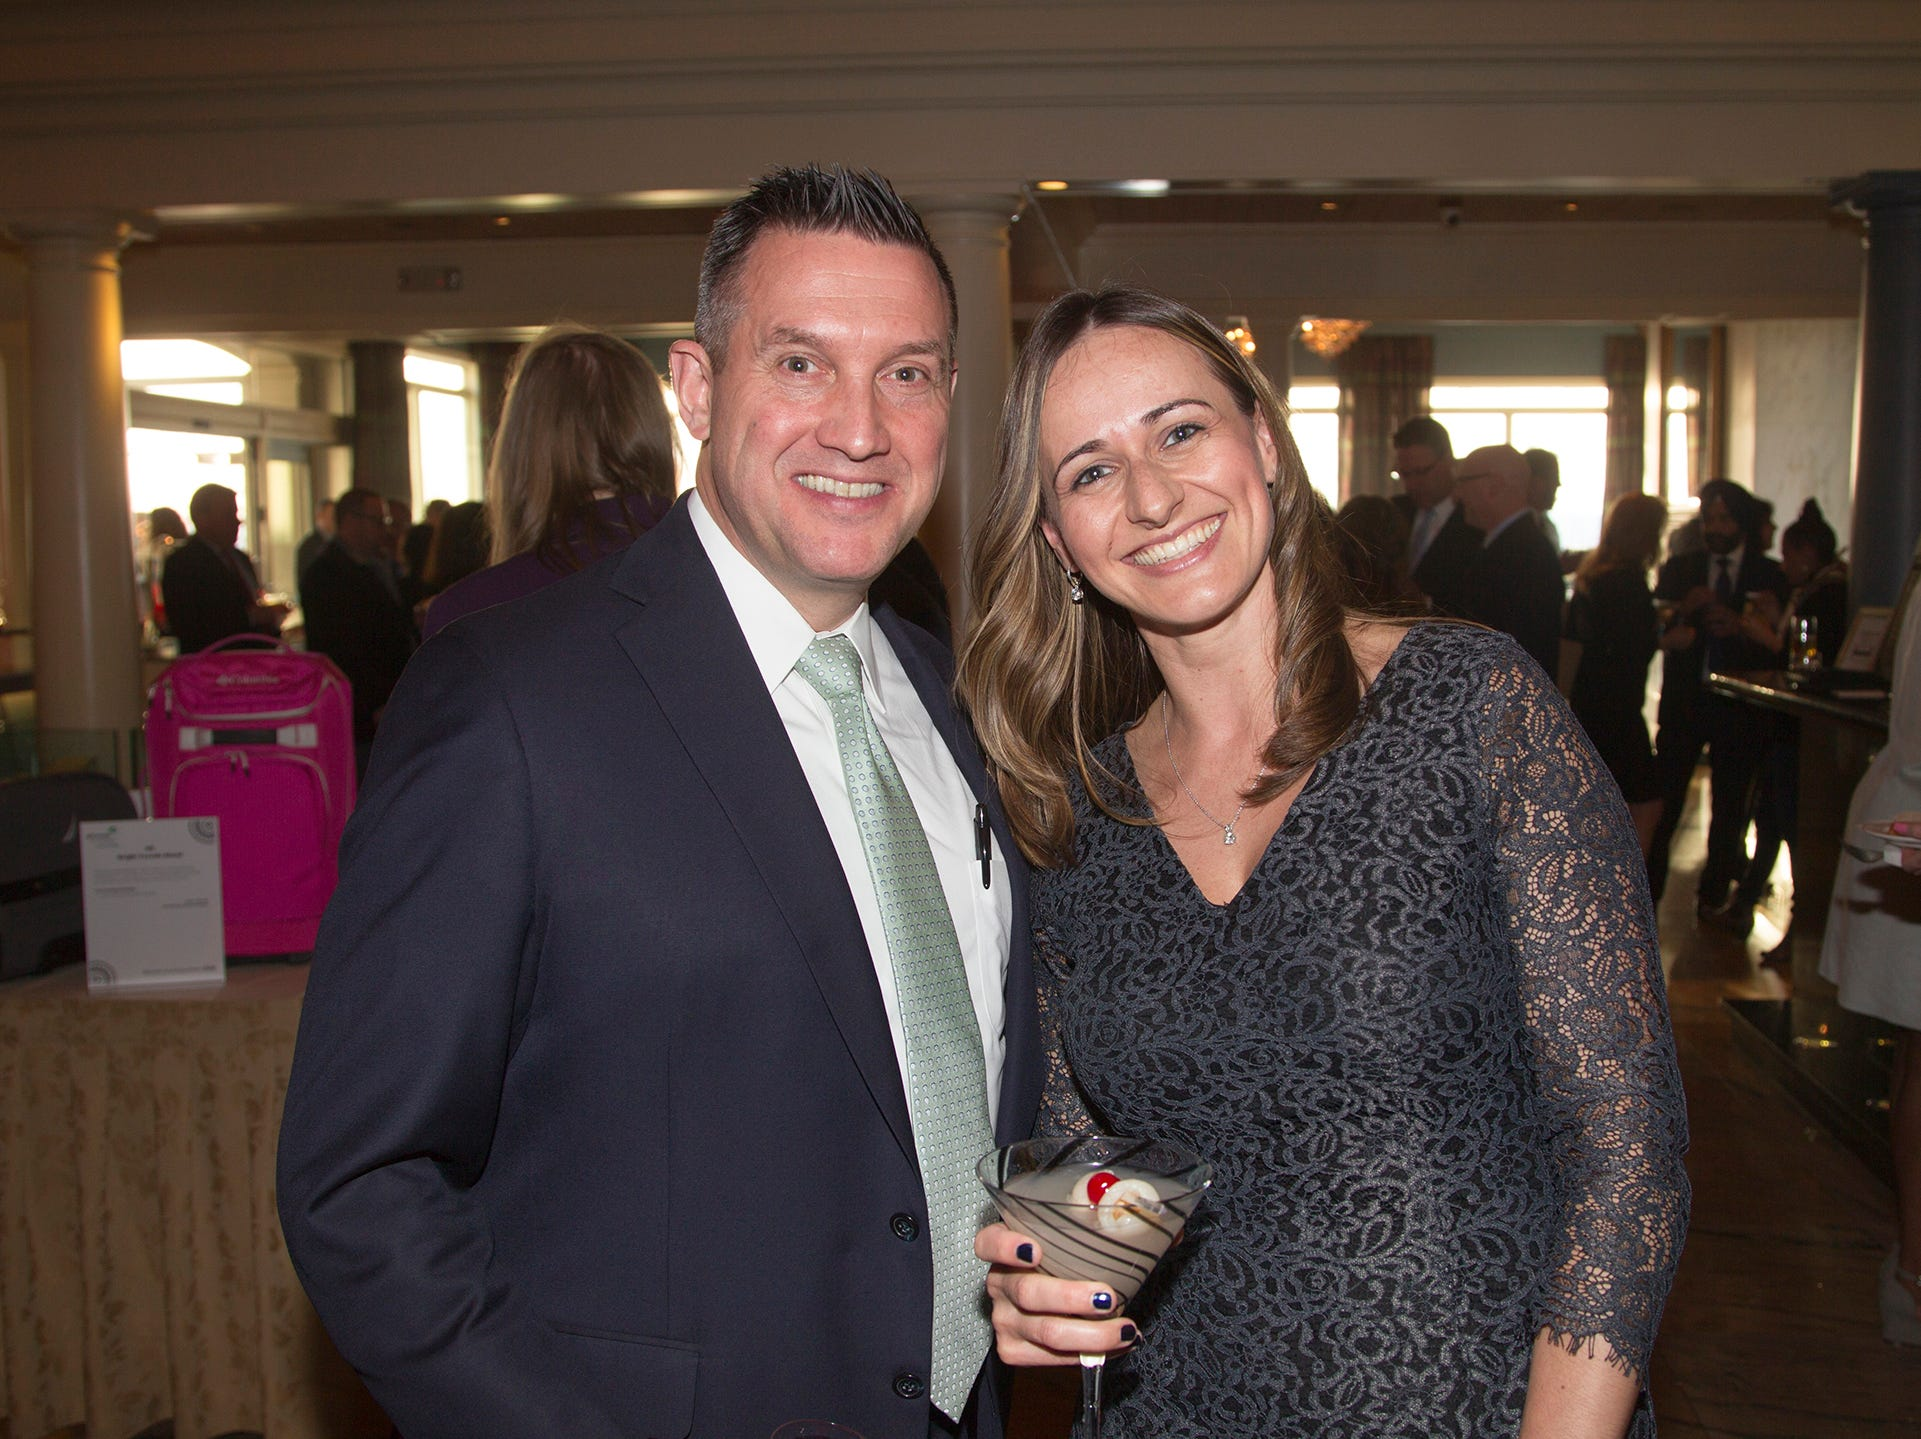 Jim Schlag, Marta Jankowski. Girl Scouts of Northern New Jersey held its Women of Achievement 2019 at Westmount Country Club in Woodland Park. 04/04/2019